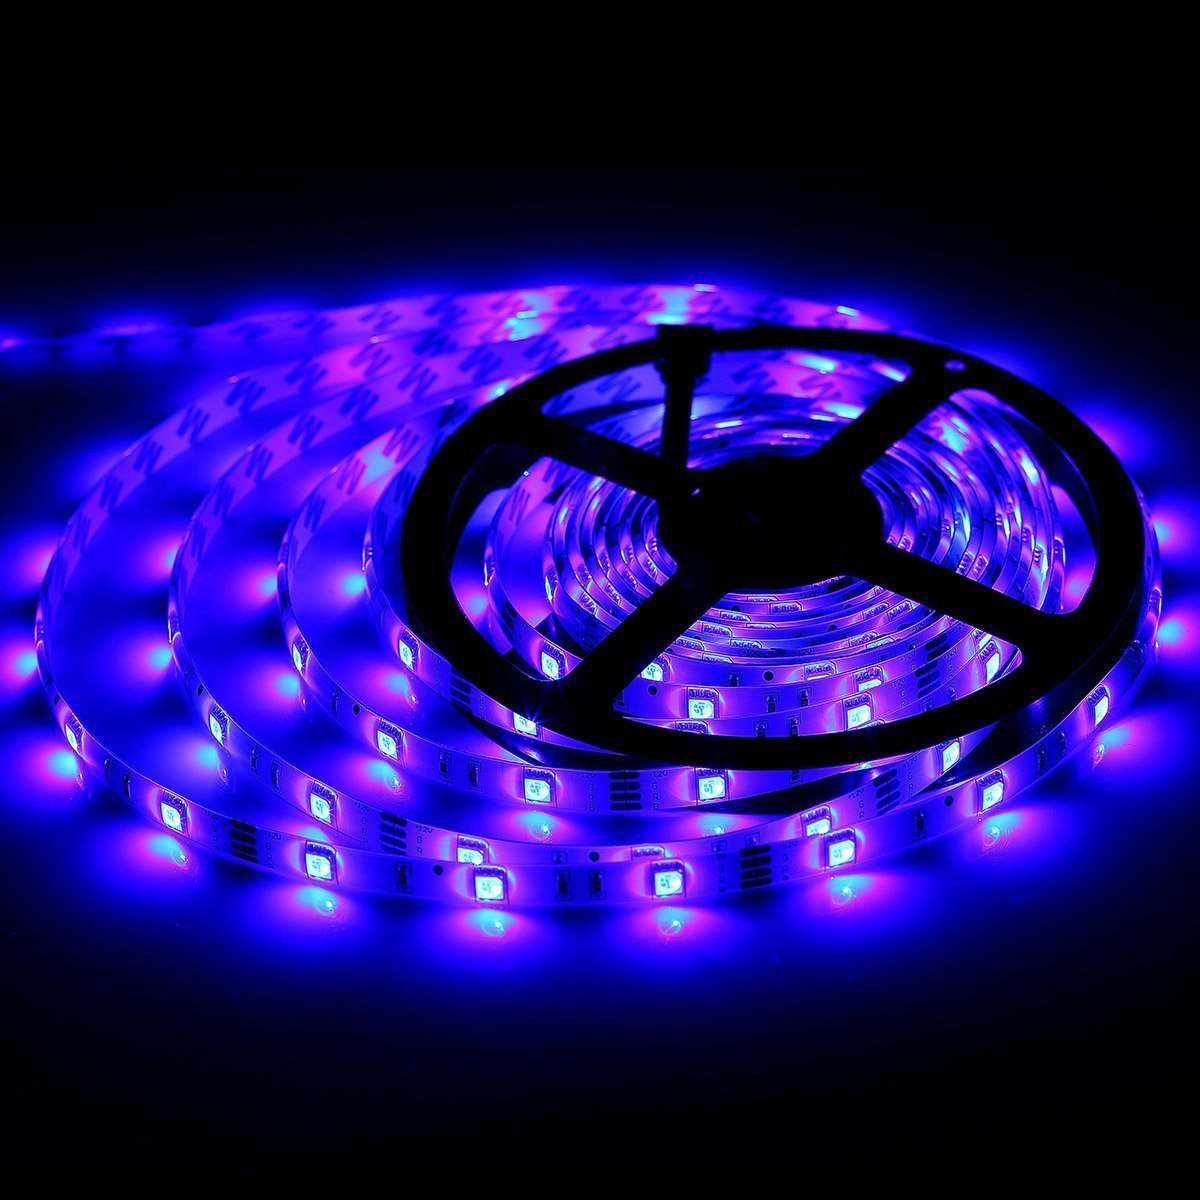 Bmouo 2 Reels 12v 328ft Waterproof Flexible Rgb Led Strip. Brown And Red Living Room. Wall Decoration Living Room. Best Paint Finish For Living Room. Living Room Storage Ideas For Toys. Living Room Waterfall. Purple Walls Living Room. Persian Living Room. Living Room Cushions